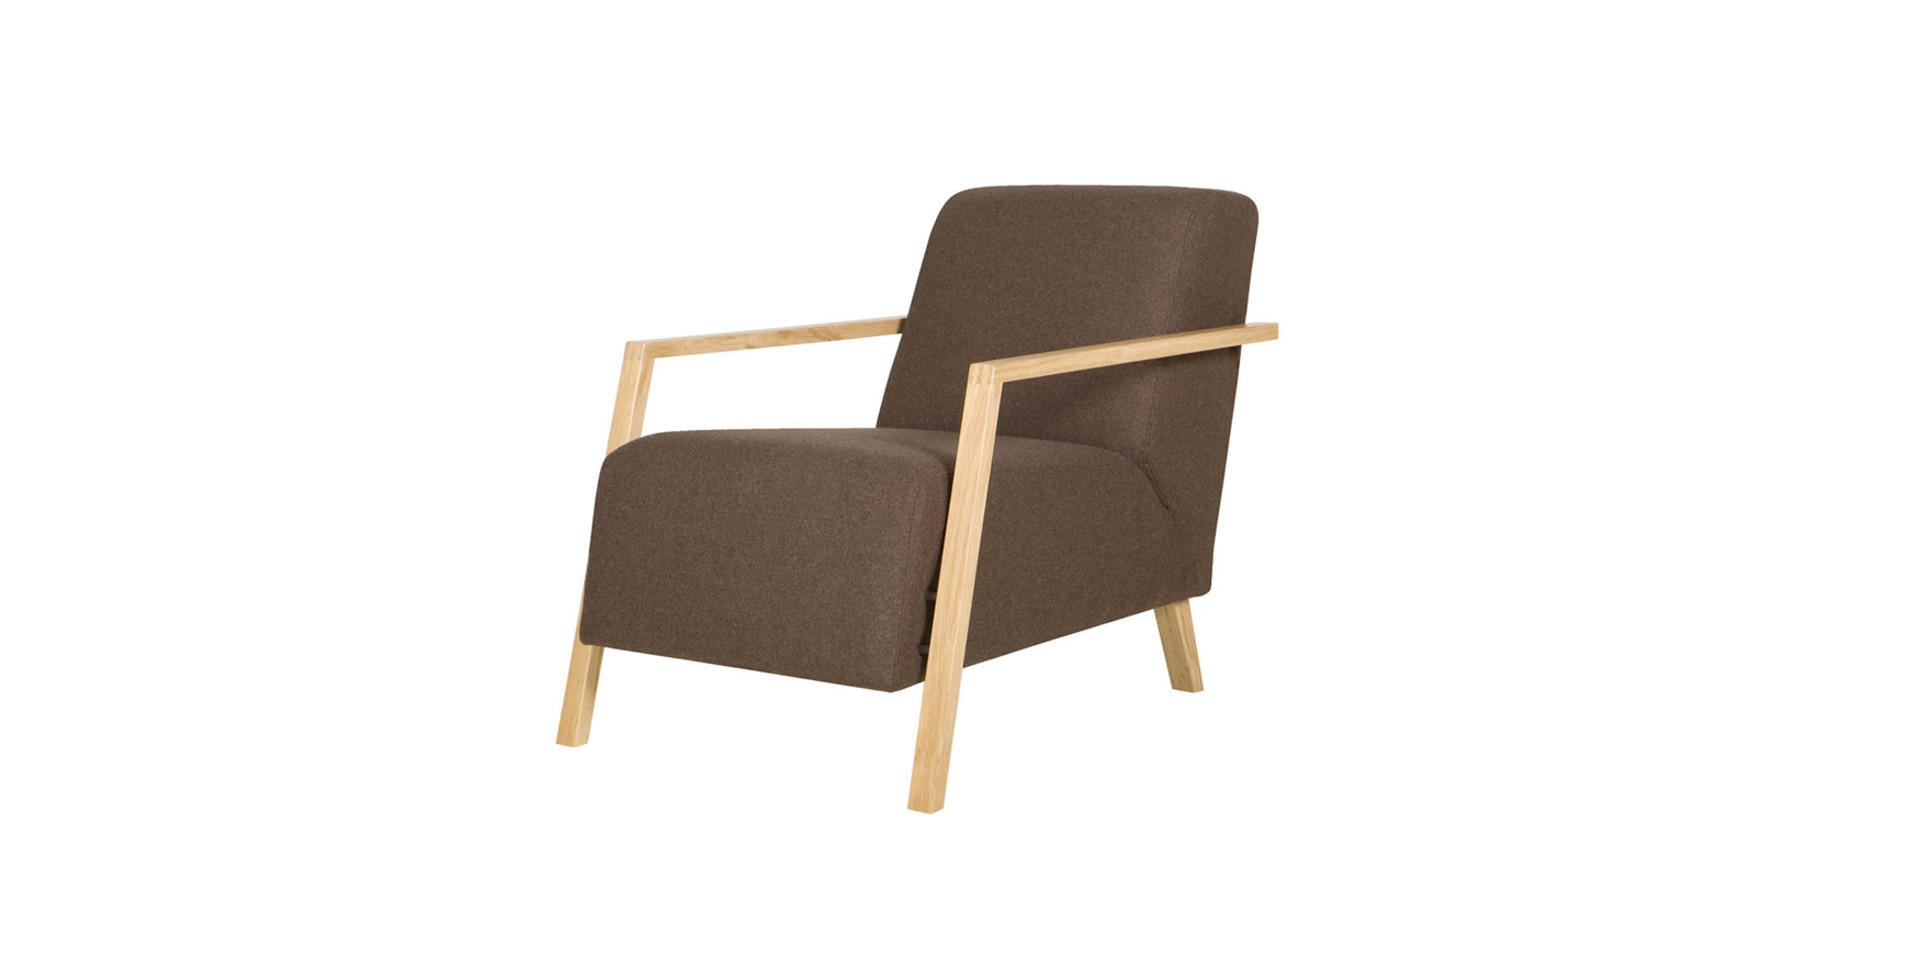 sits-foxi-fauteuil-armchair_panno1008_brown_4